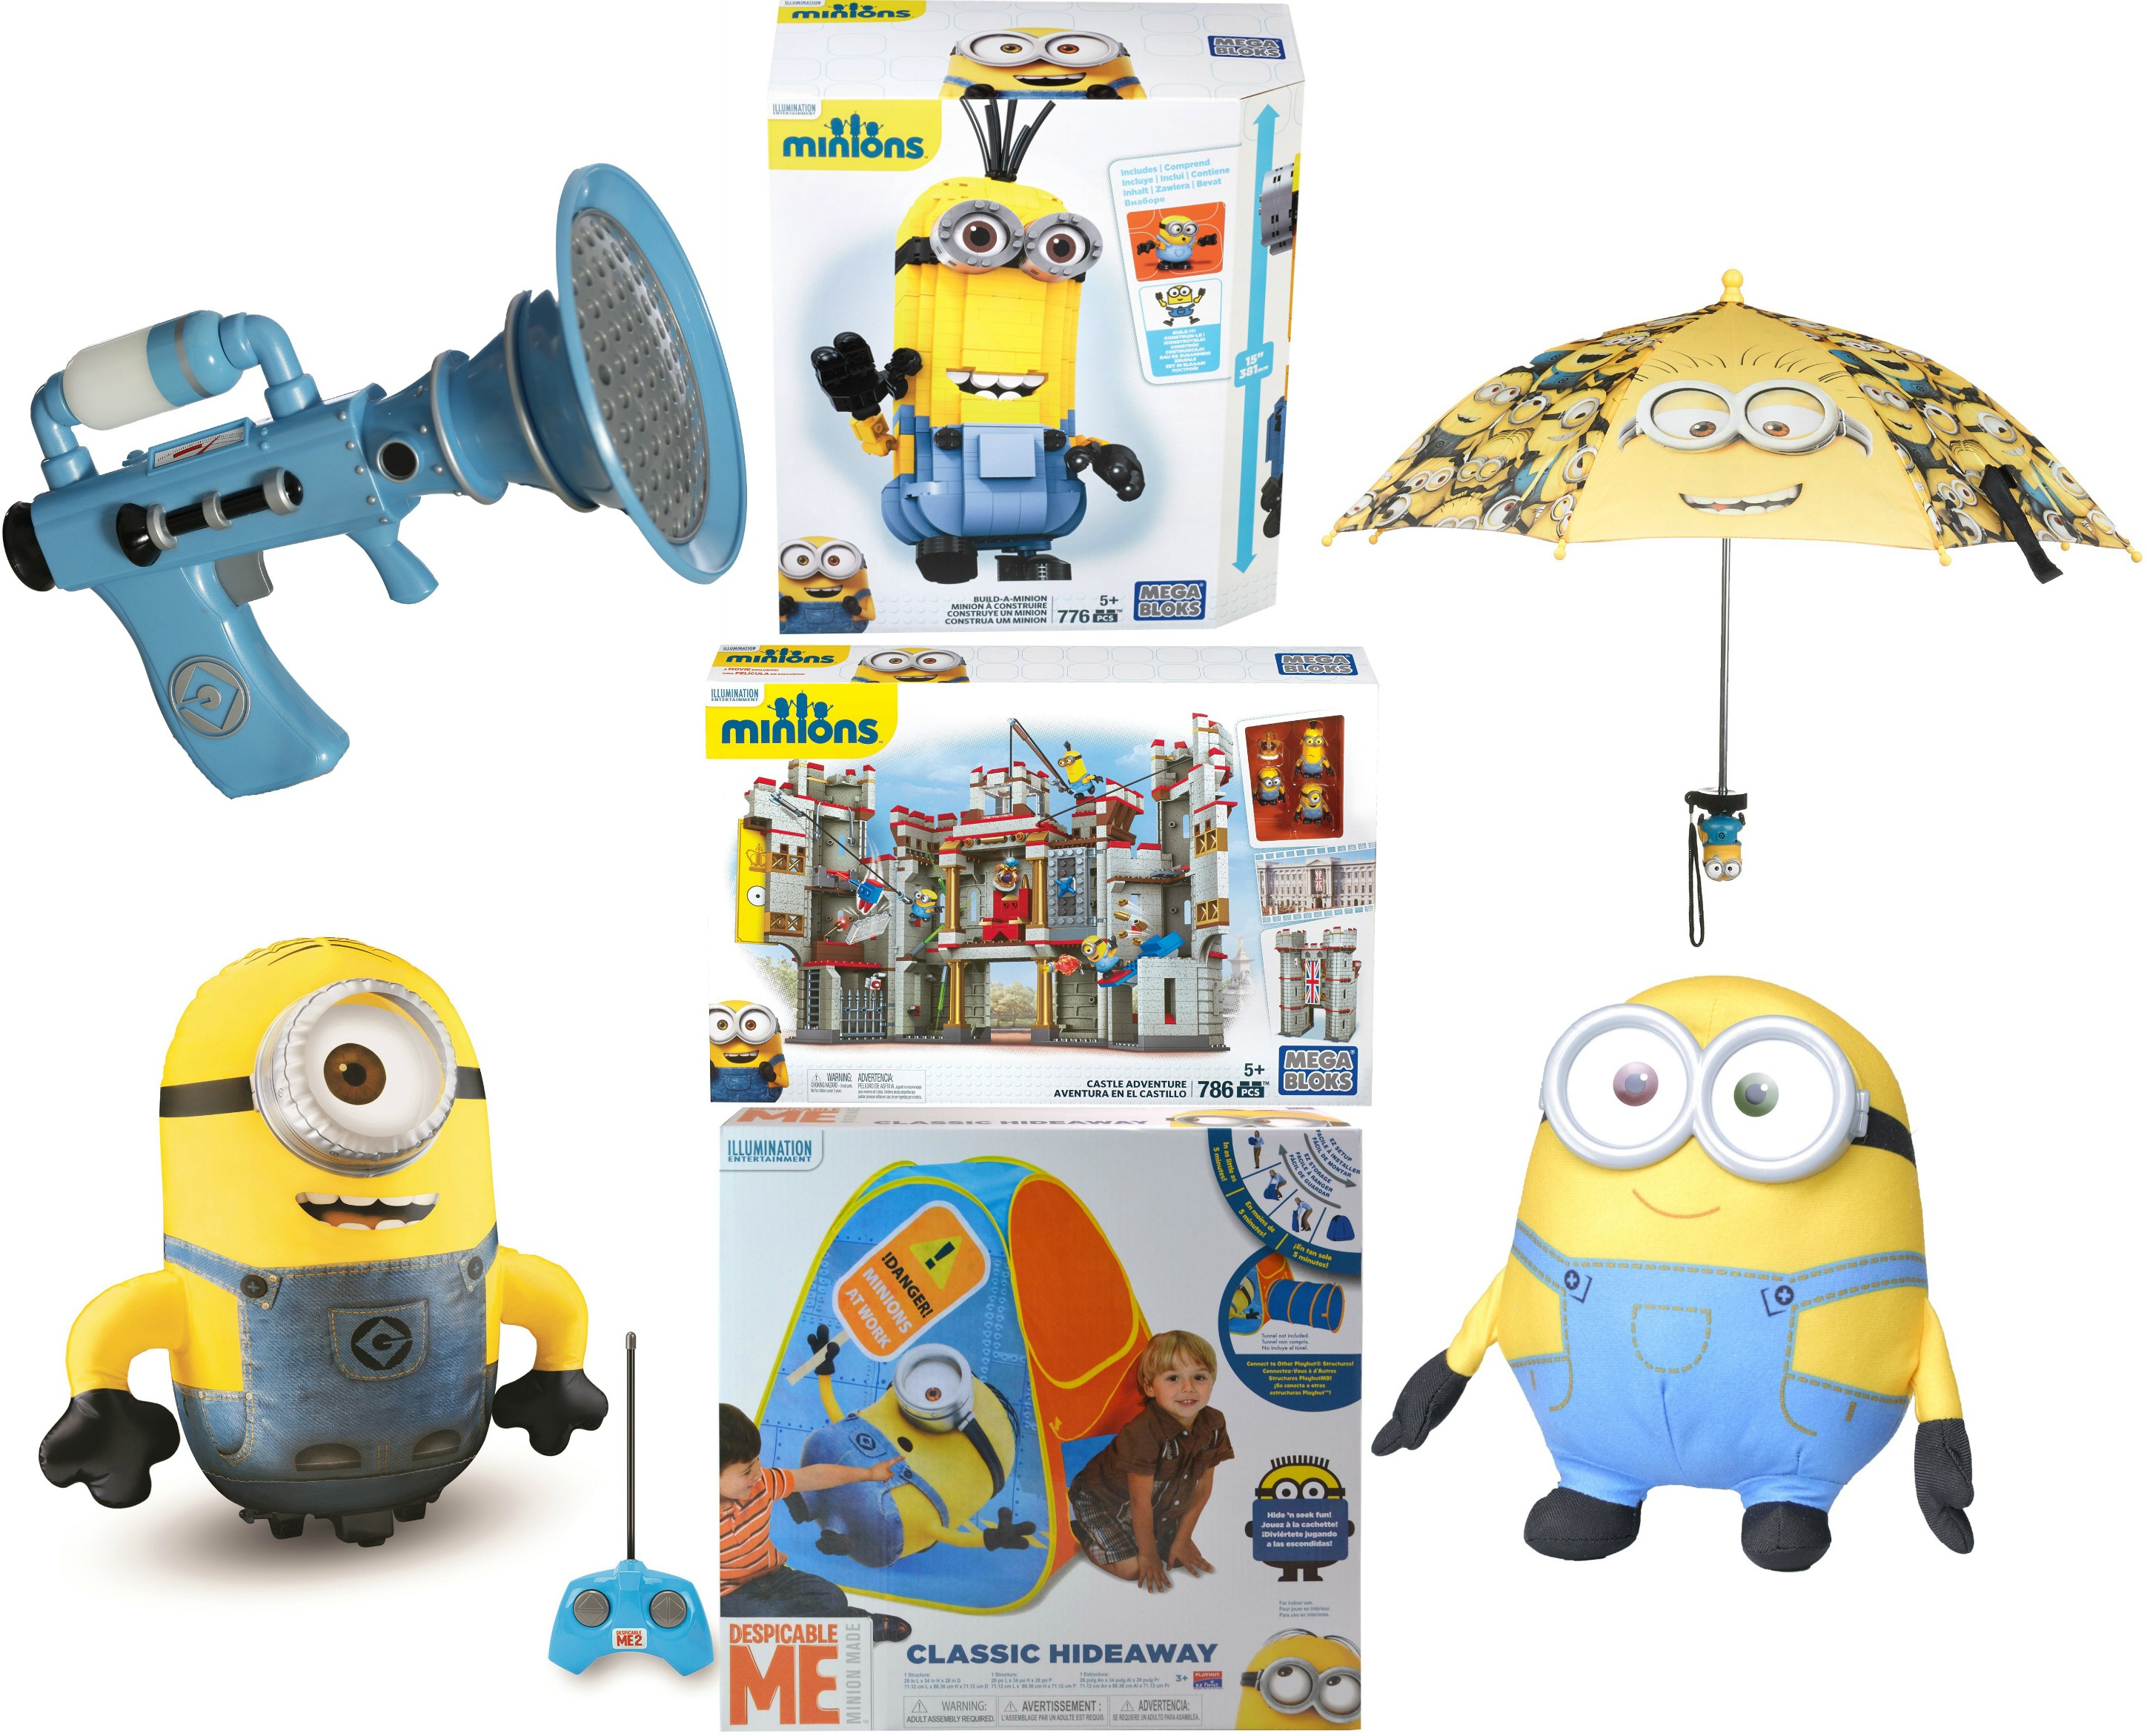 gifts for a minion themed birthday party